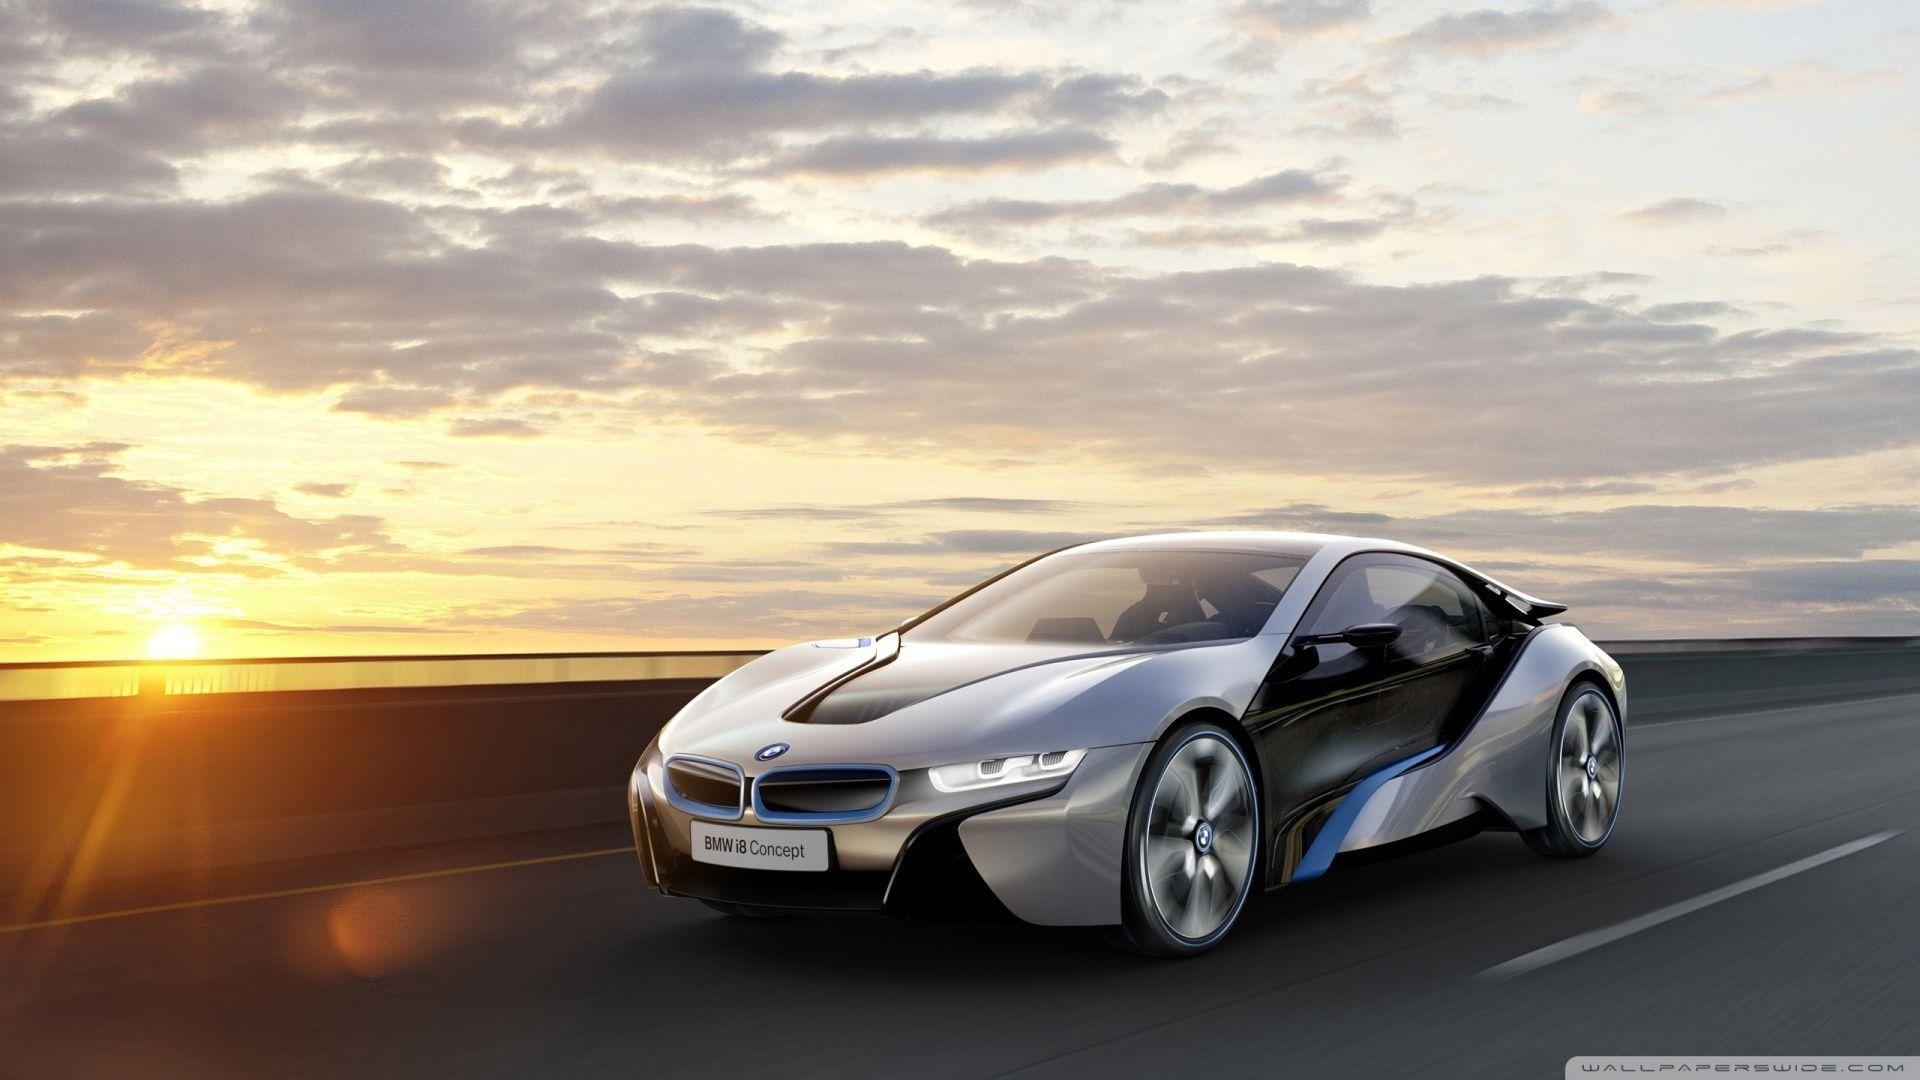 Superb BMW I8 Car Concept HD Desktop Wallpaper : High Definition .